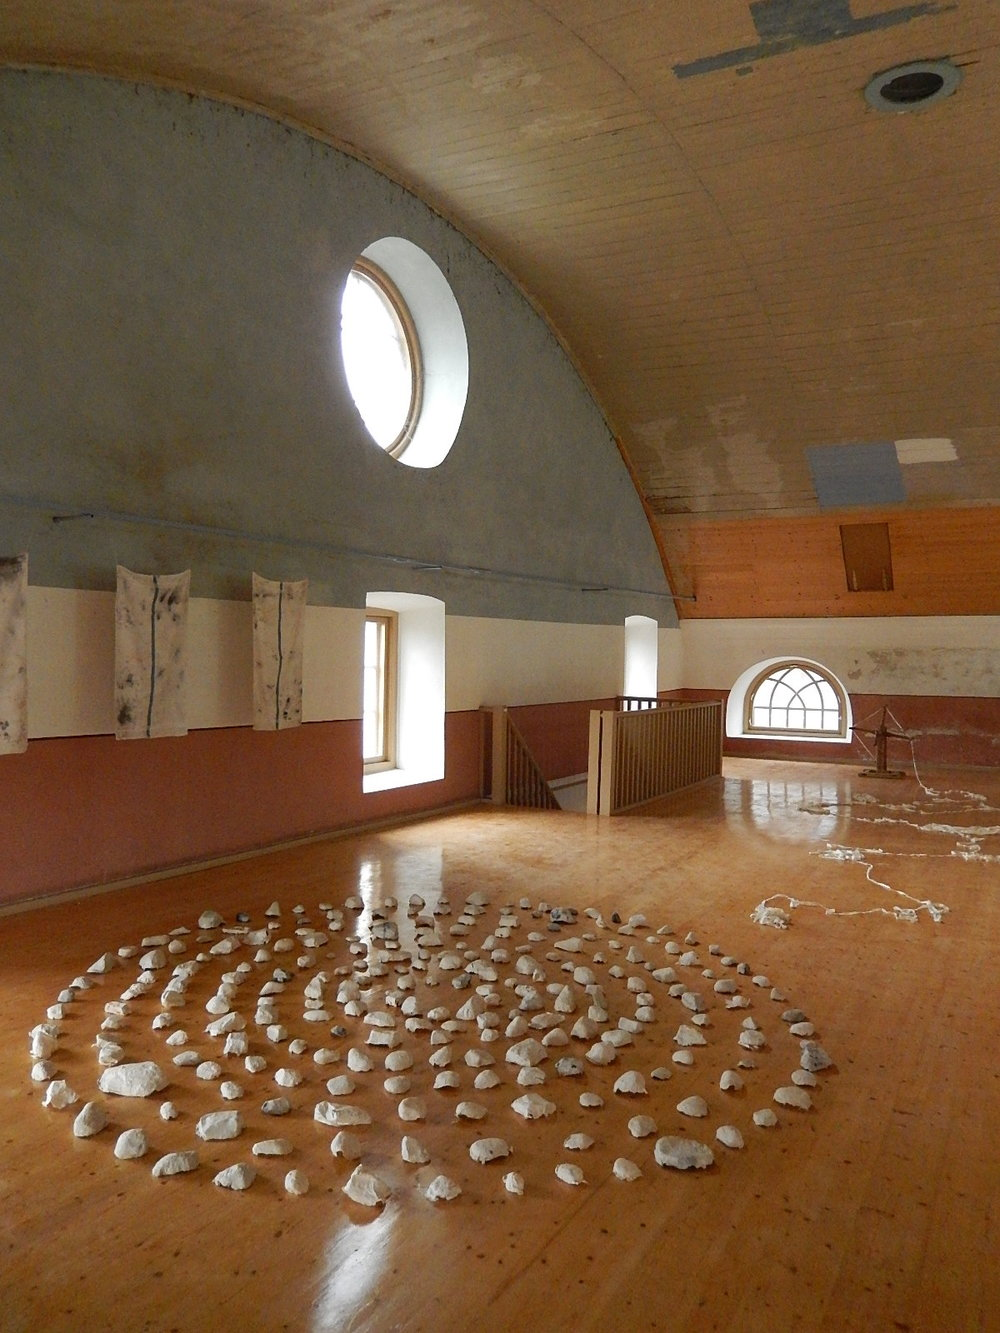 Installation,  Sabile Jewish Synagogue Contemporary Art and Heritage Site , Sabile, Latvia, 2014.